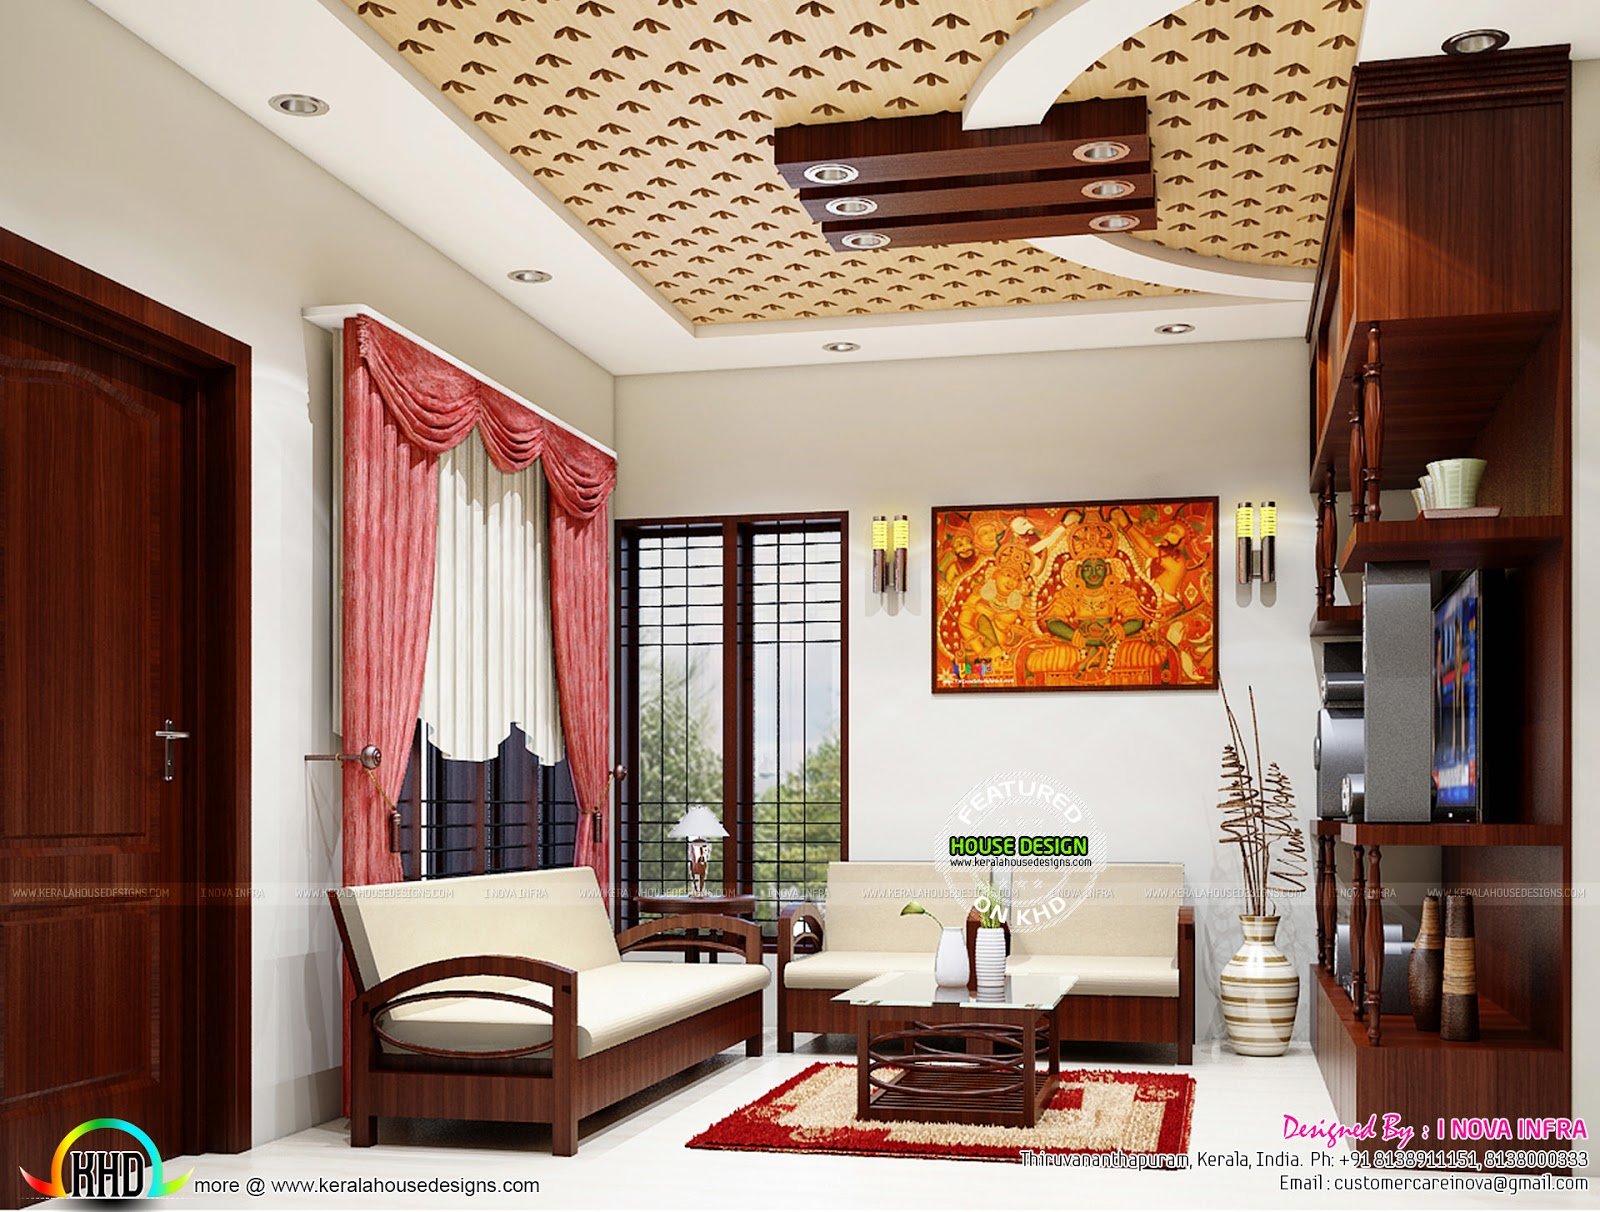 Kerala traditional interiors kerala home design and for Interior design for duplex living room